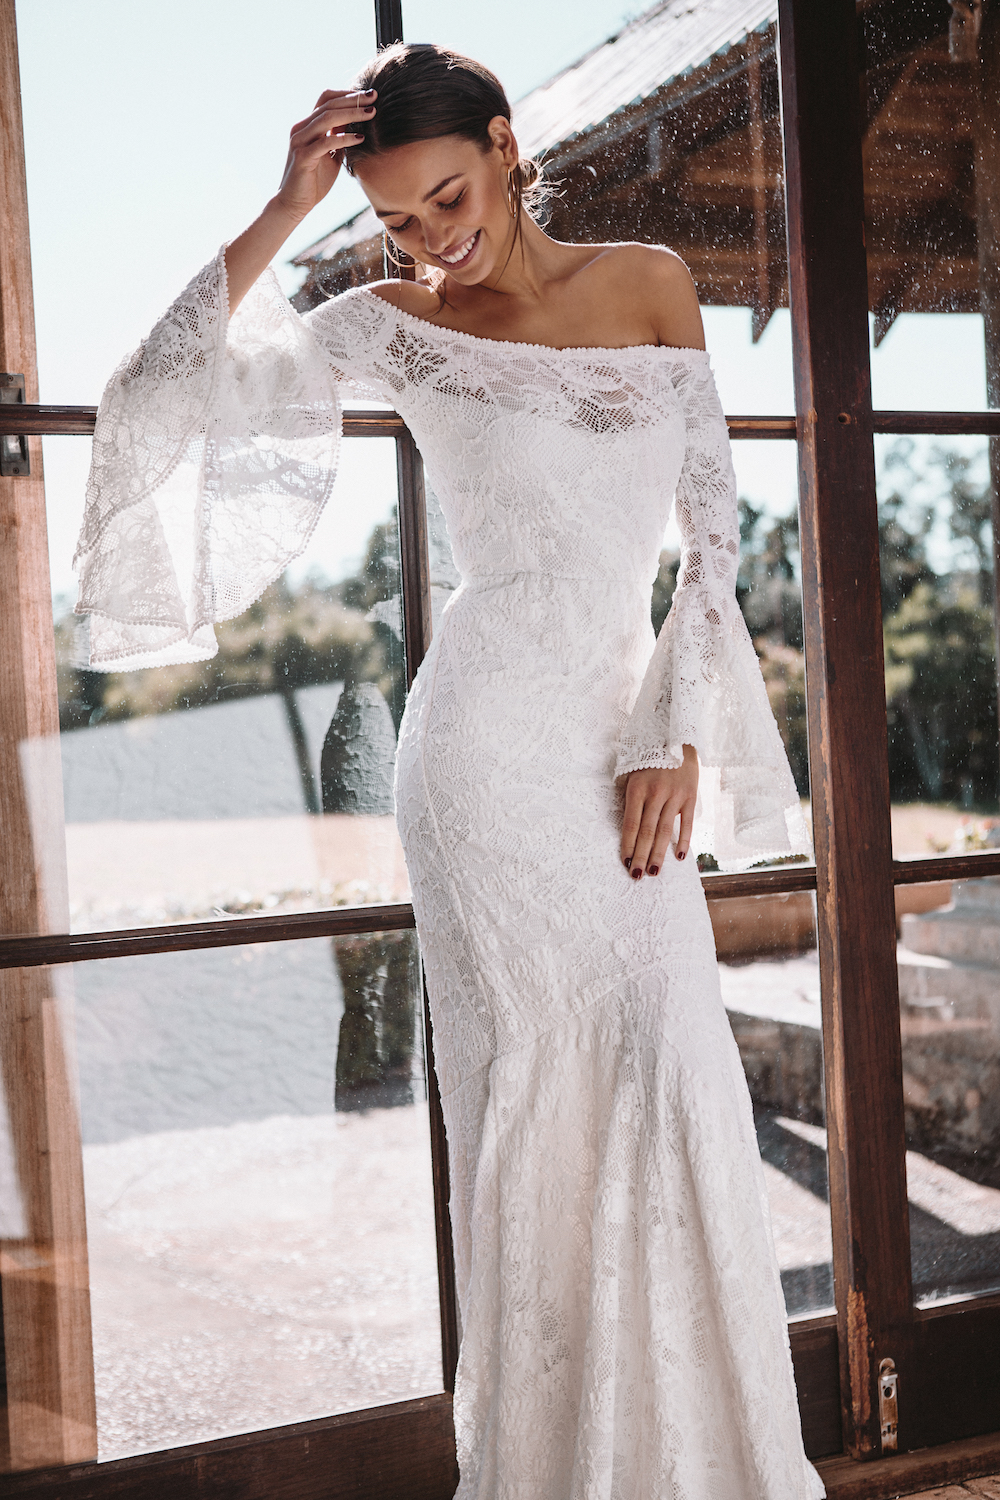 The SLOANE wedding dress from the Les Deux Capsule Collection by Grace Love Lace featured on LOVE FIND CO.